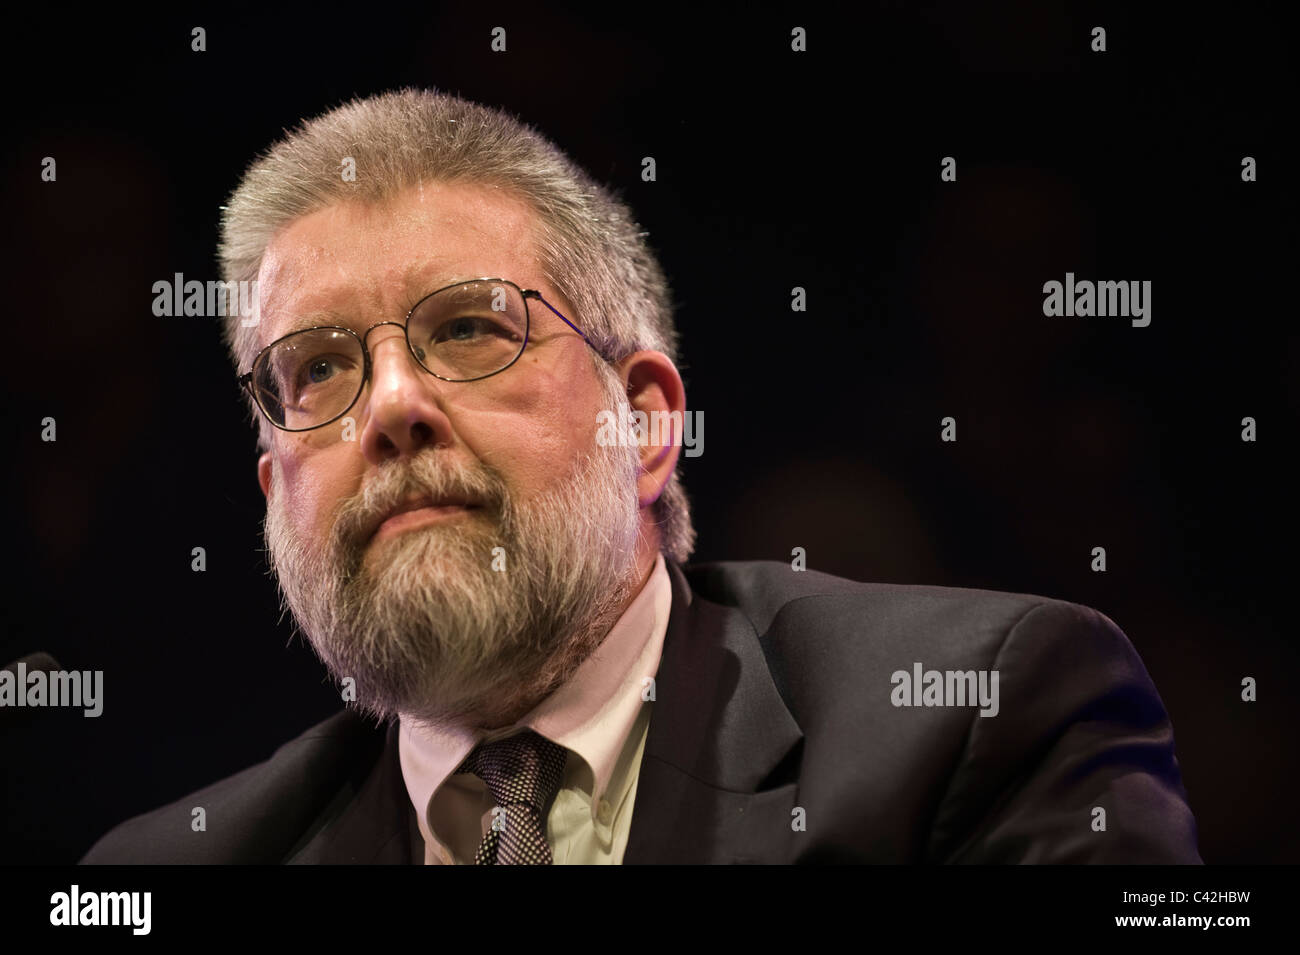 Michael Scheuer former head of CIA Bin Laden Unit pictured at Hay Festival 2011 - Stock Image